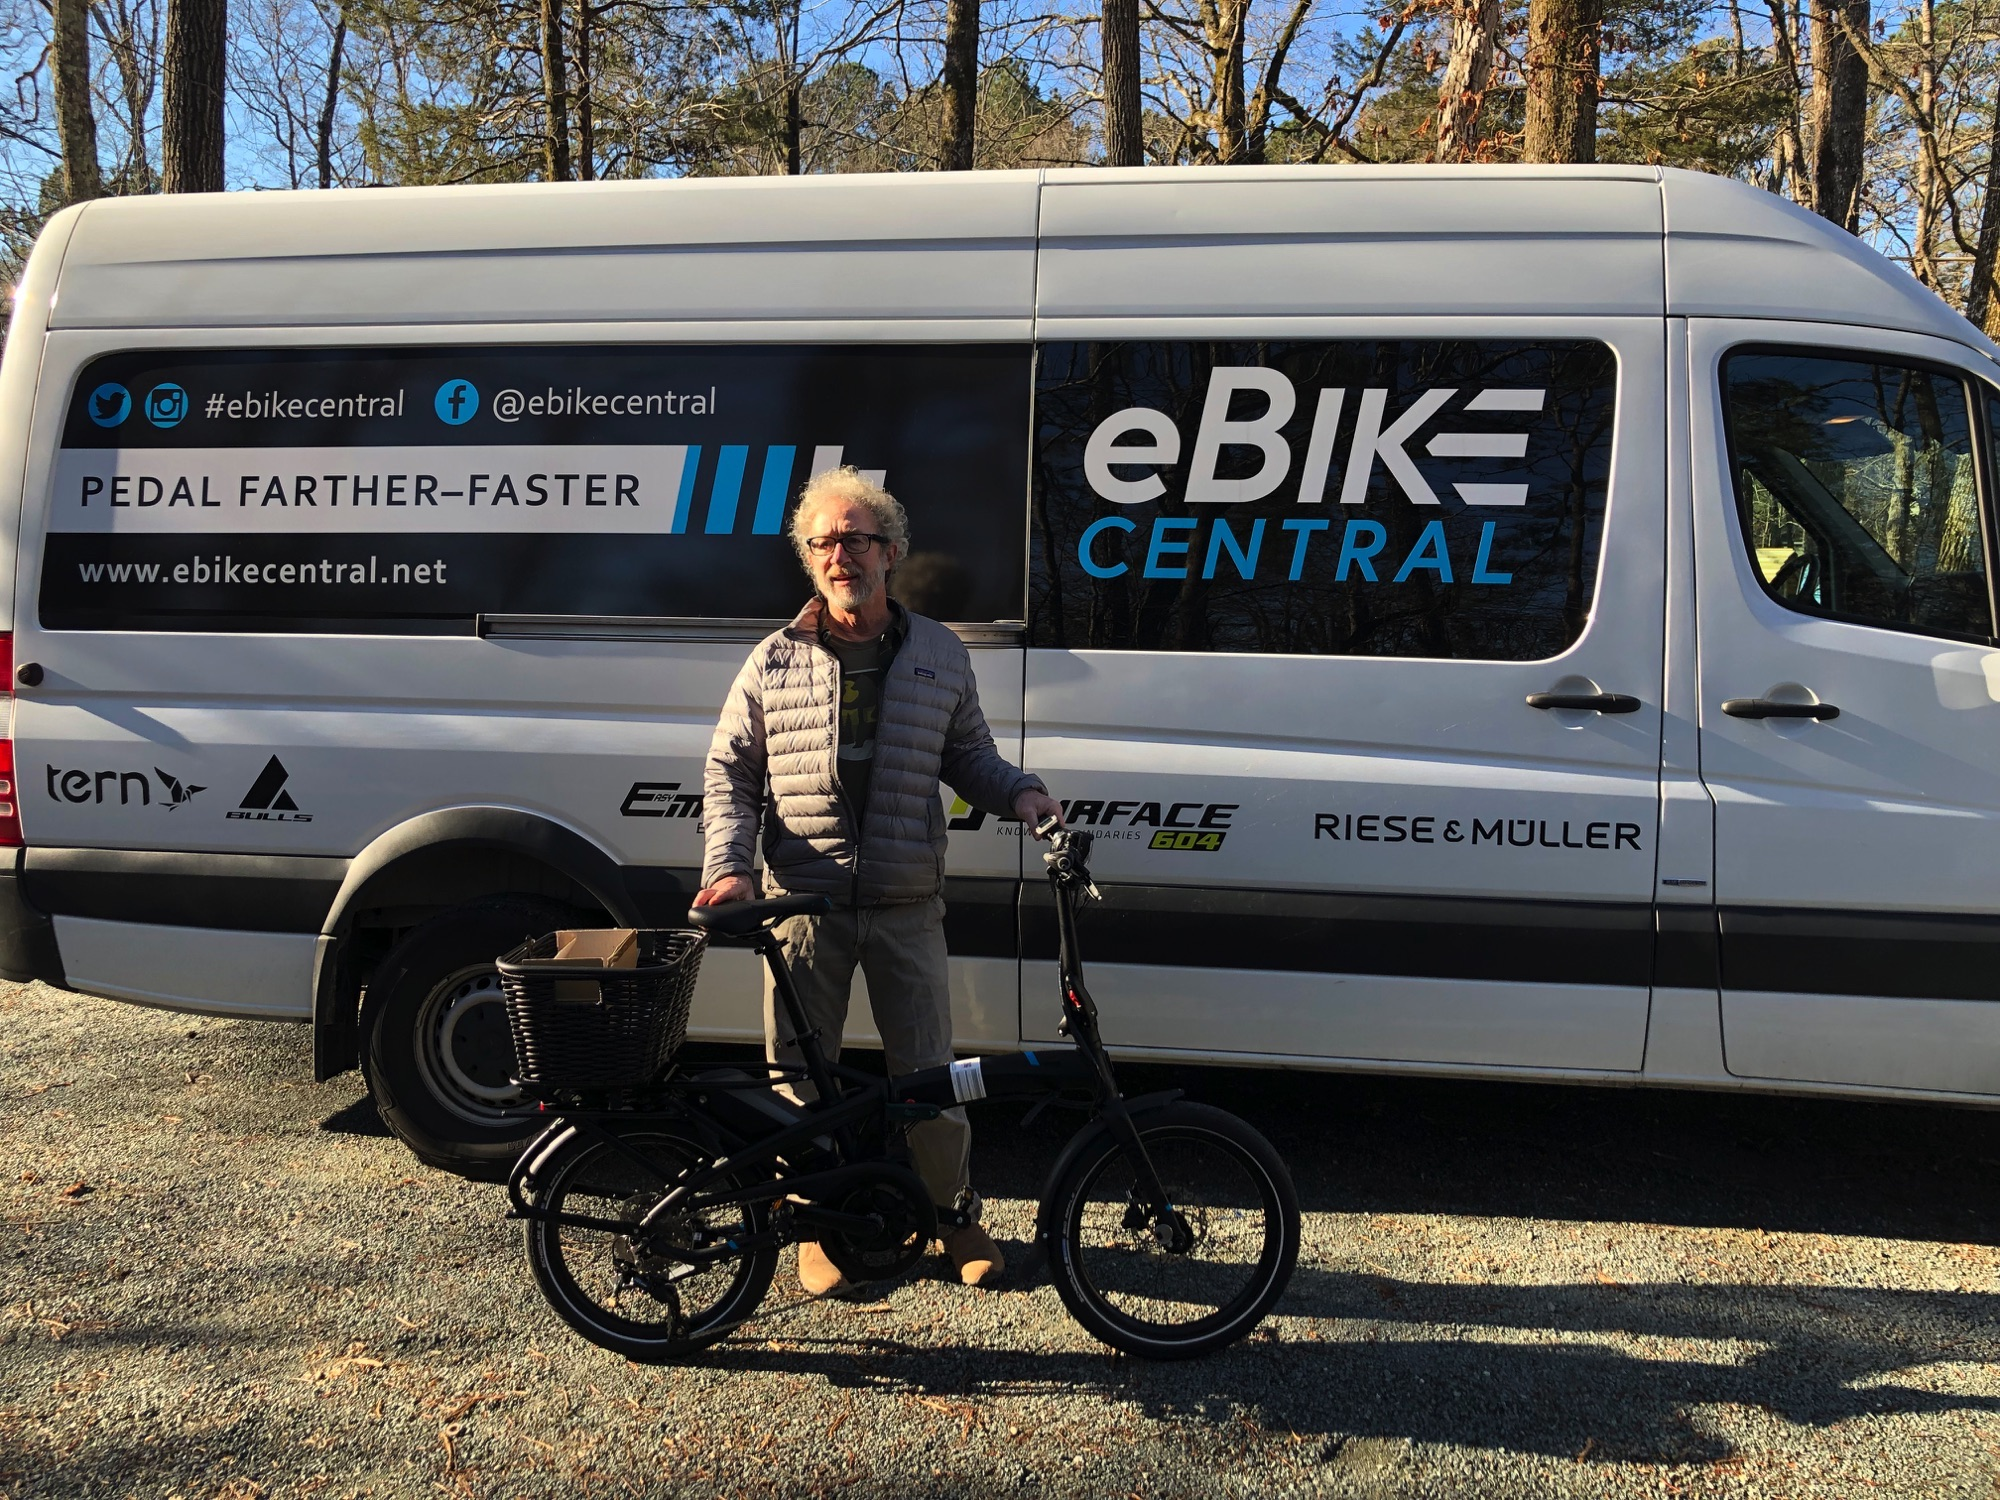 eBike Central in Chapel Hill NC